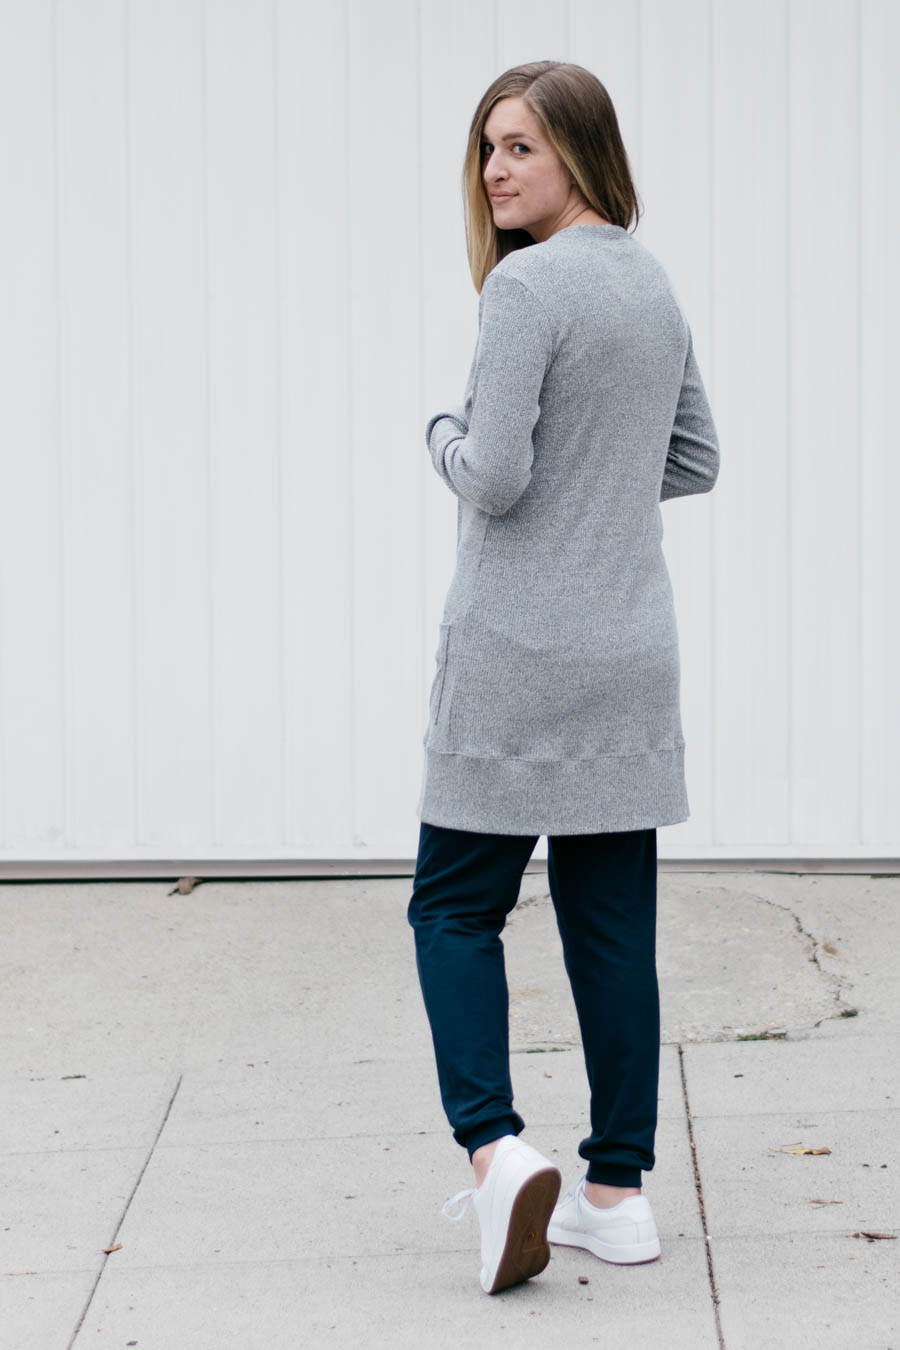 Blackwood Cardigan + No Sweat Pants